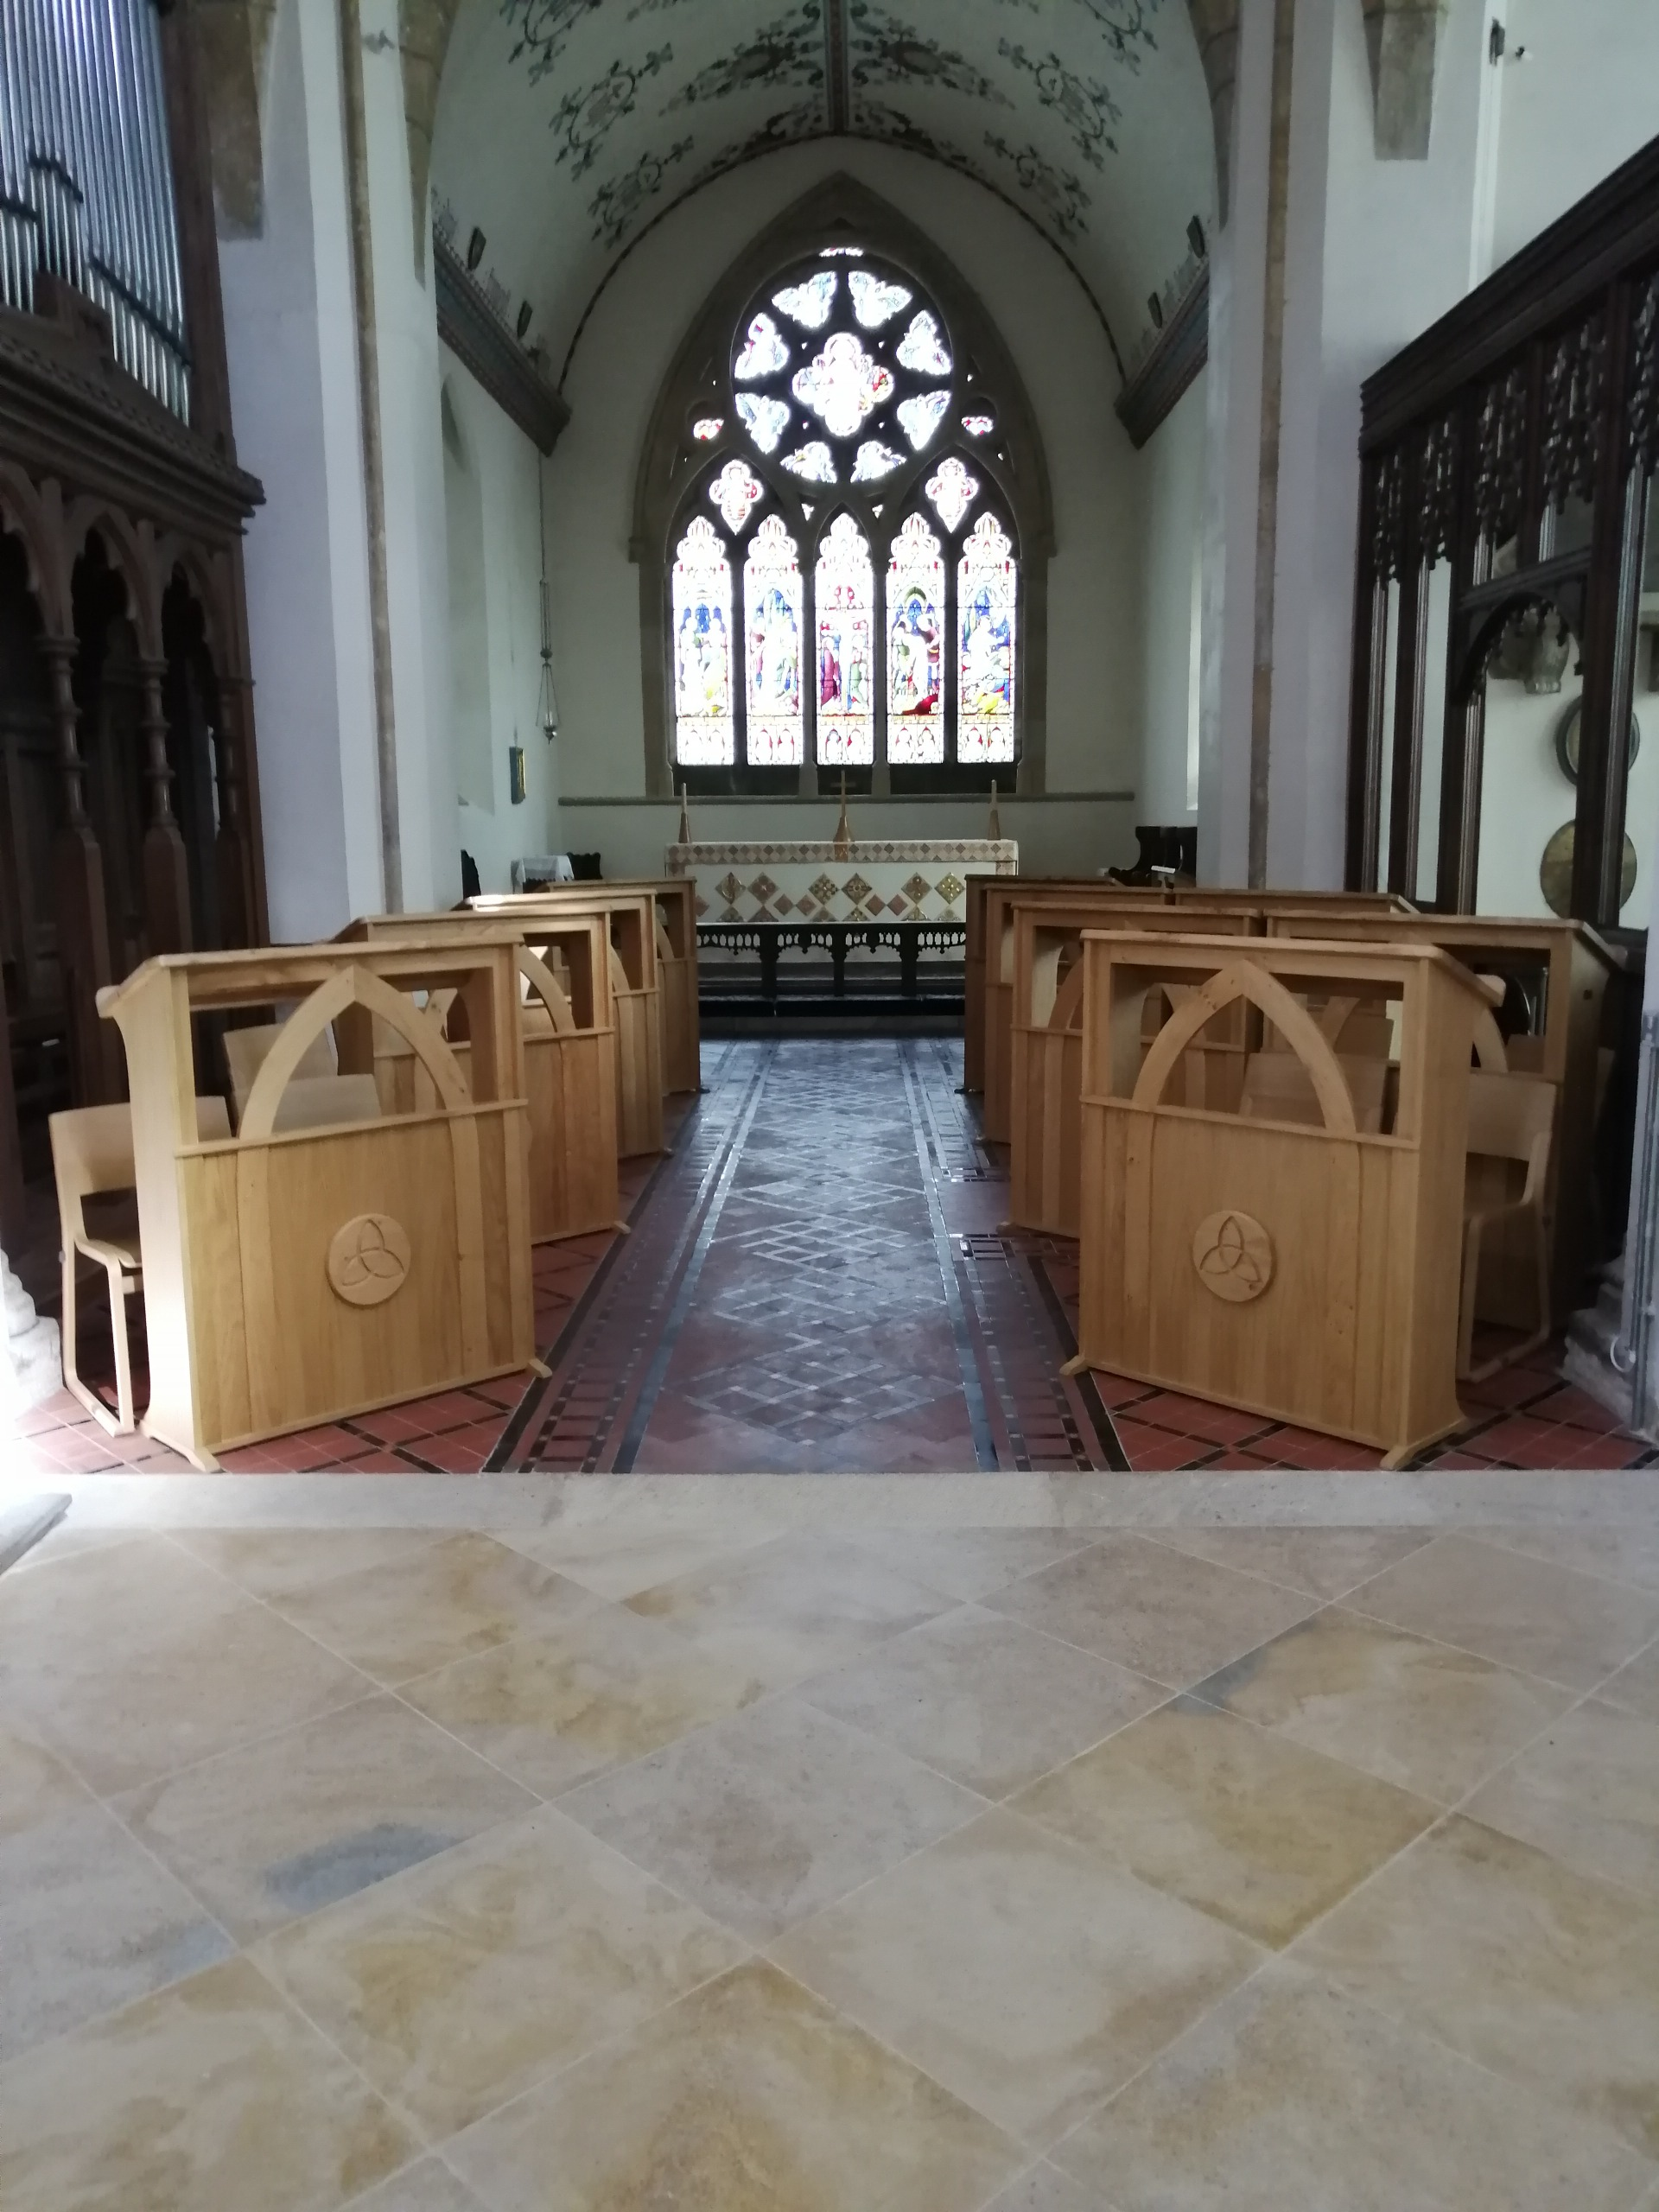 Choir Stands